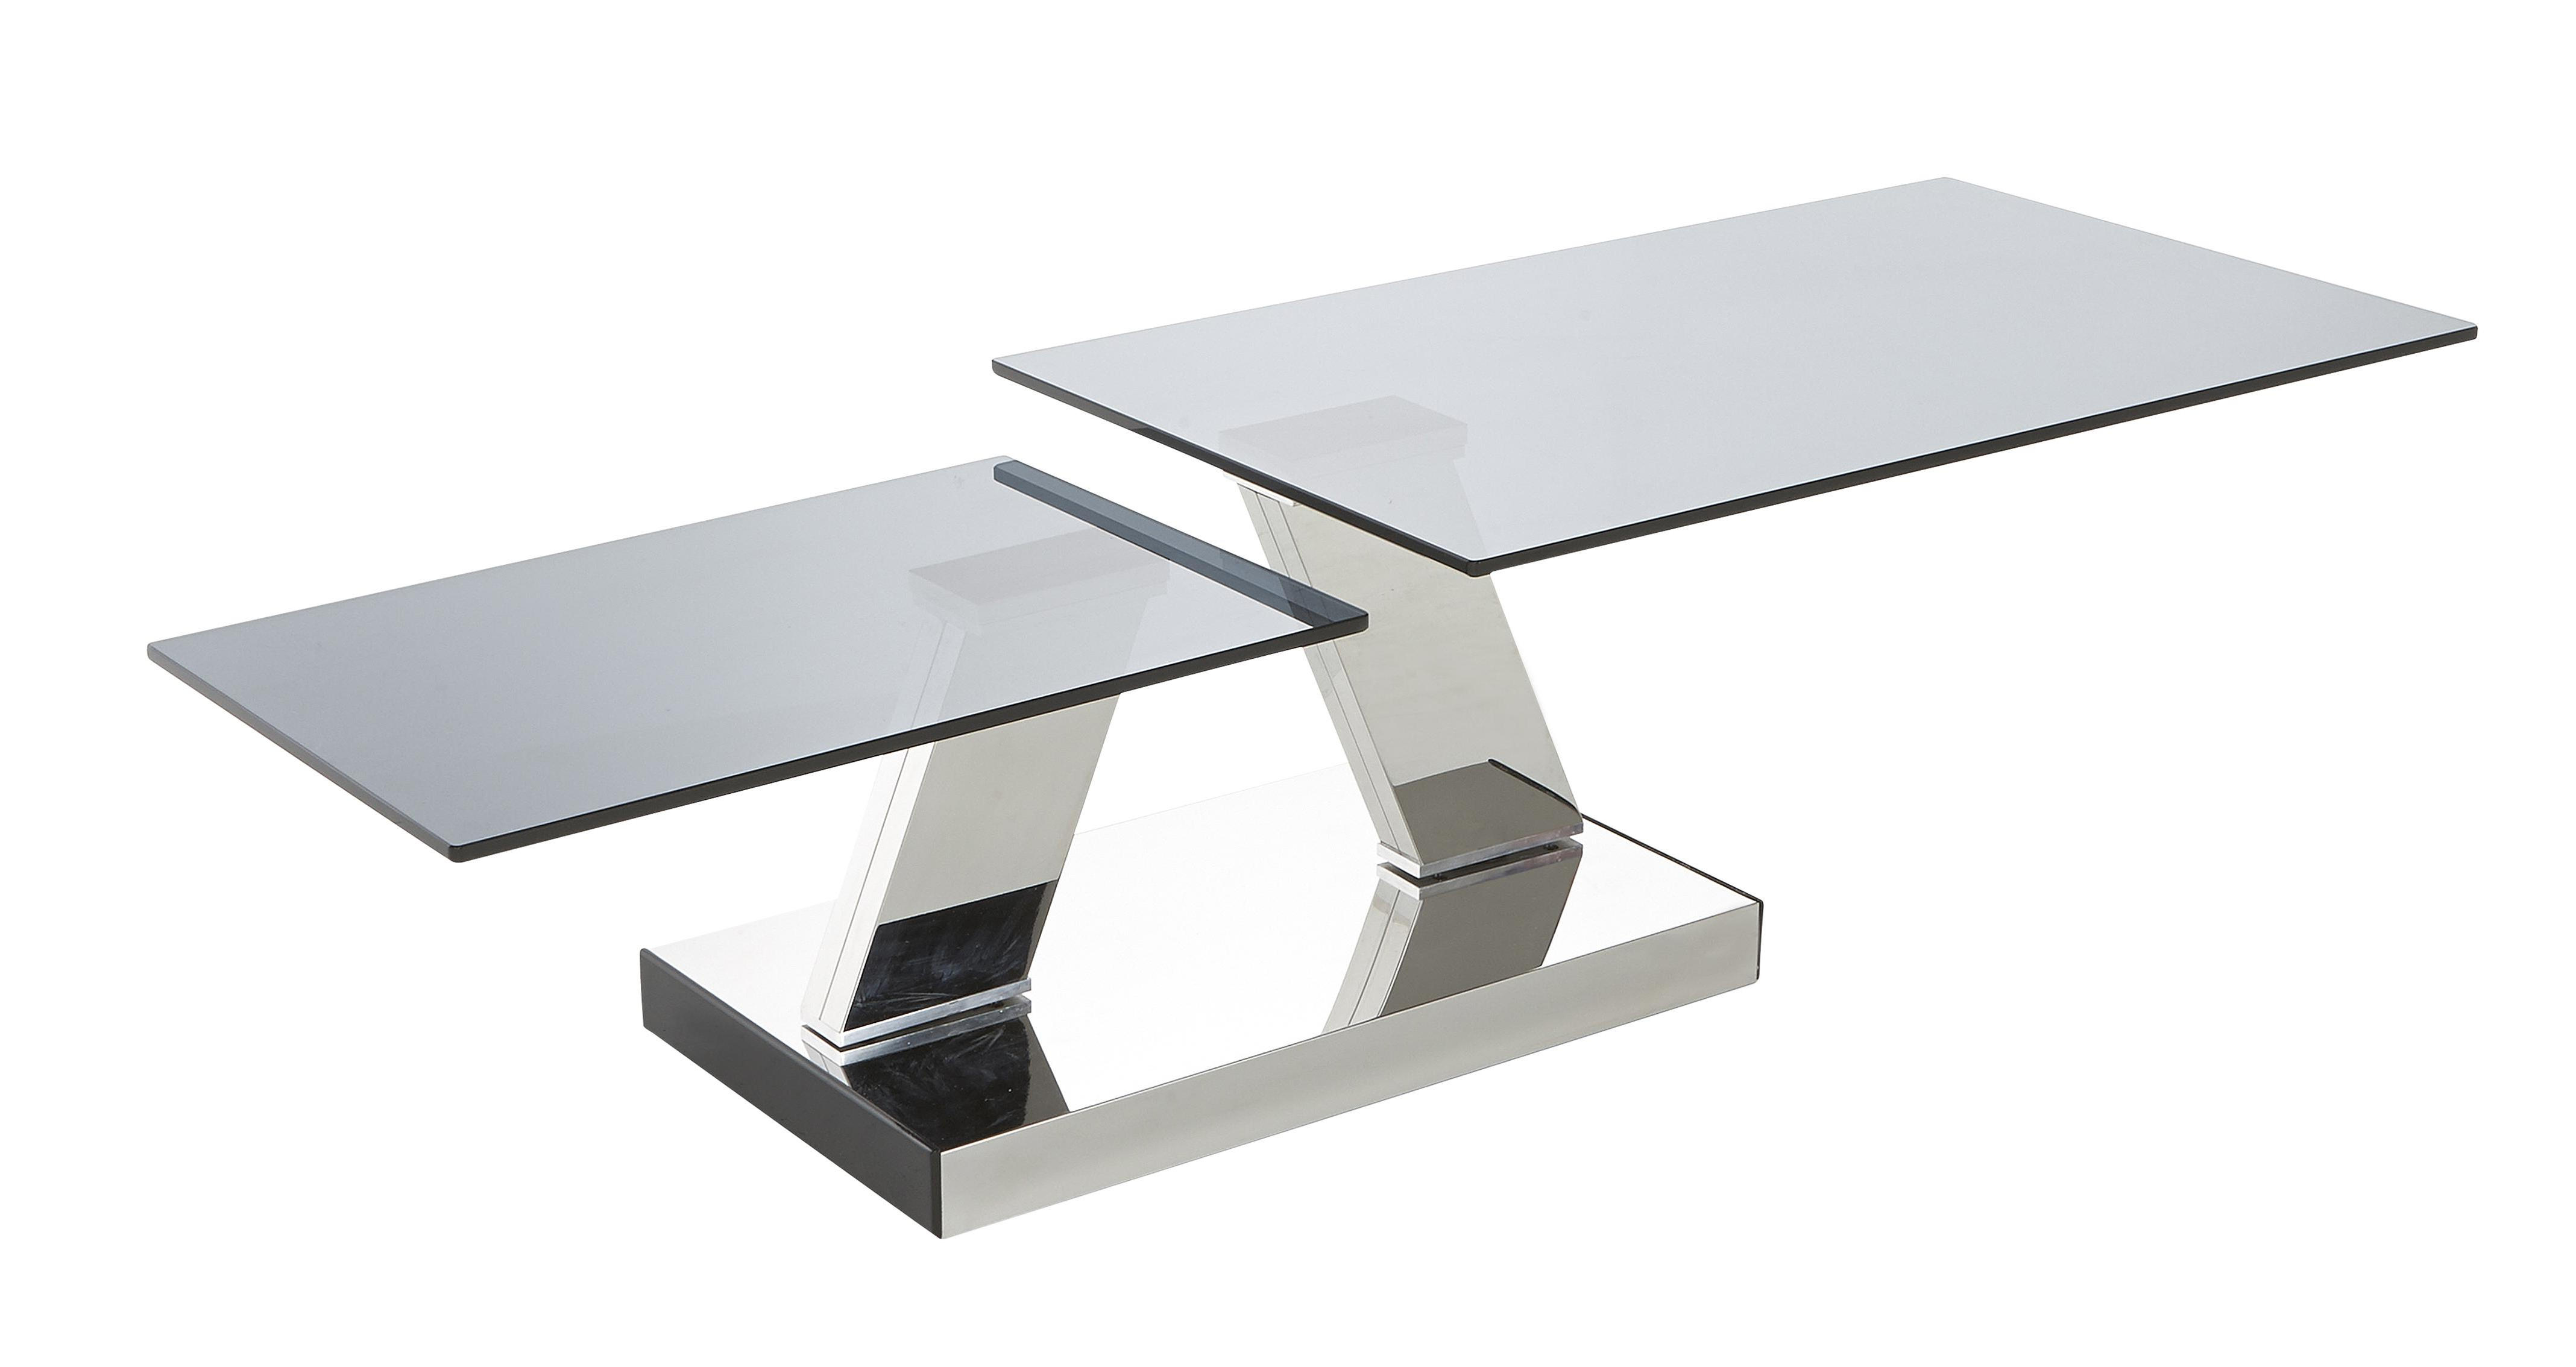 Dfs Glass Coffee Table With Unique Metal Legs Design